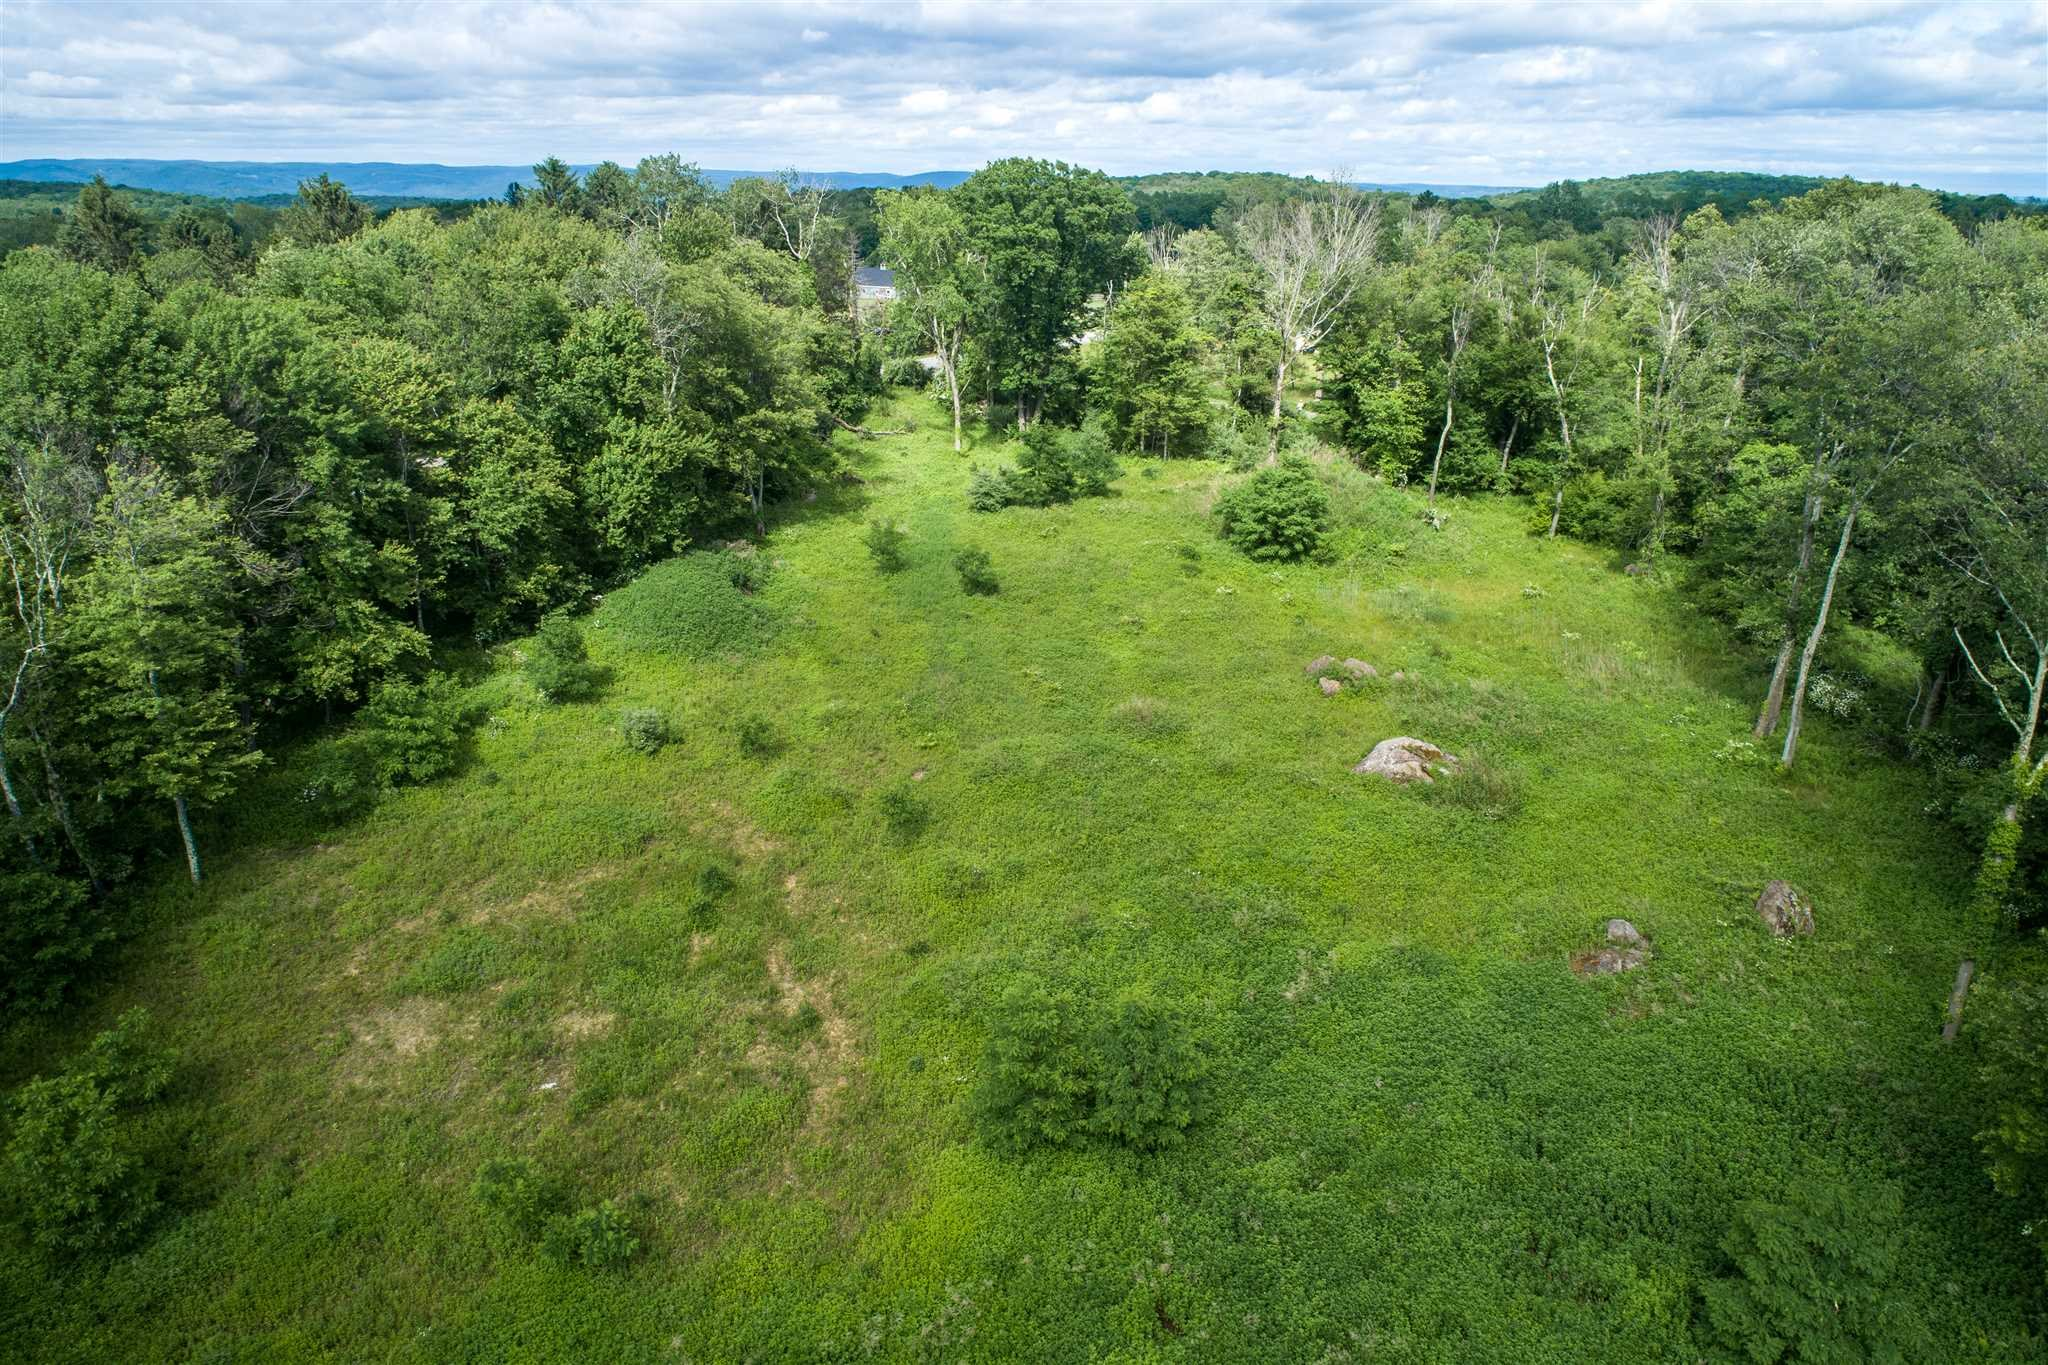 Land for Sale at QUAKER HILL Road QUAKER HILL Road Pawling, New York 12564 United States